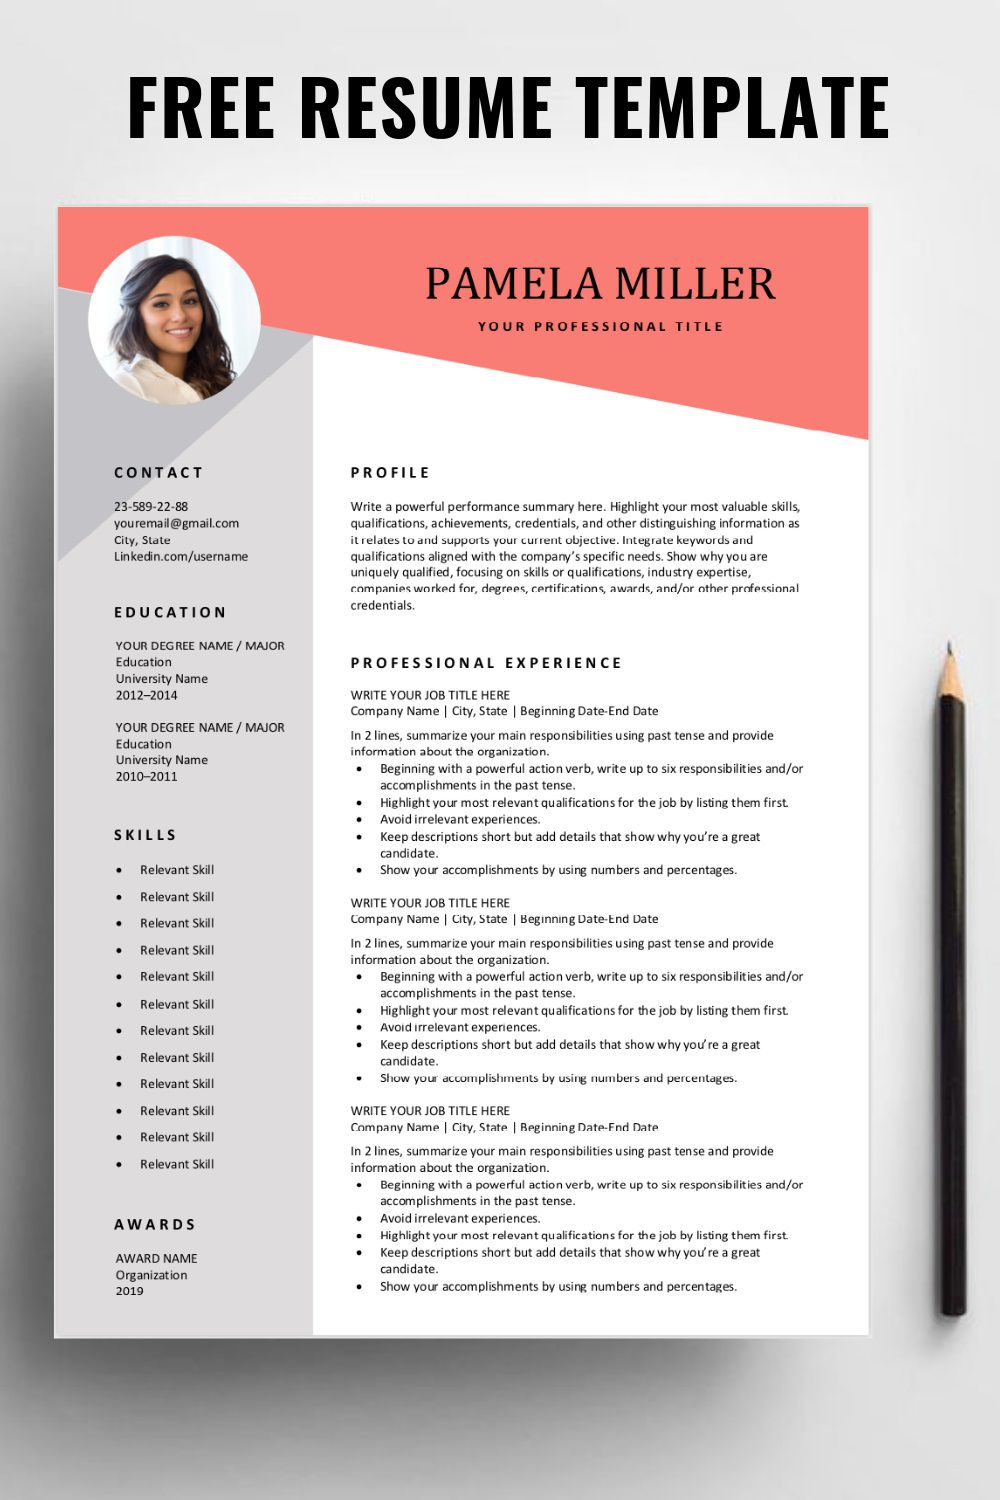 000 Formidable Free Resume Template Download High Def  Google Doc Attractive Microsoft Word 2020Full